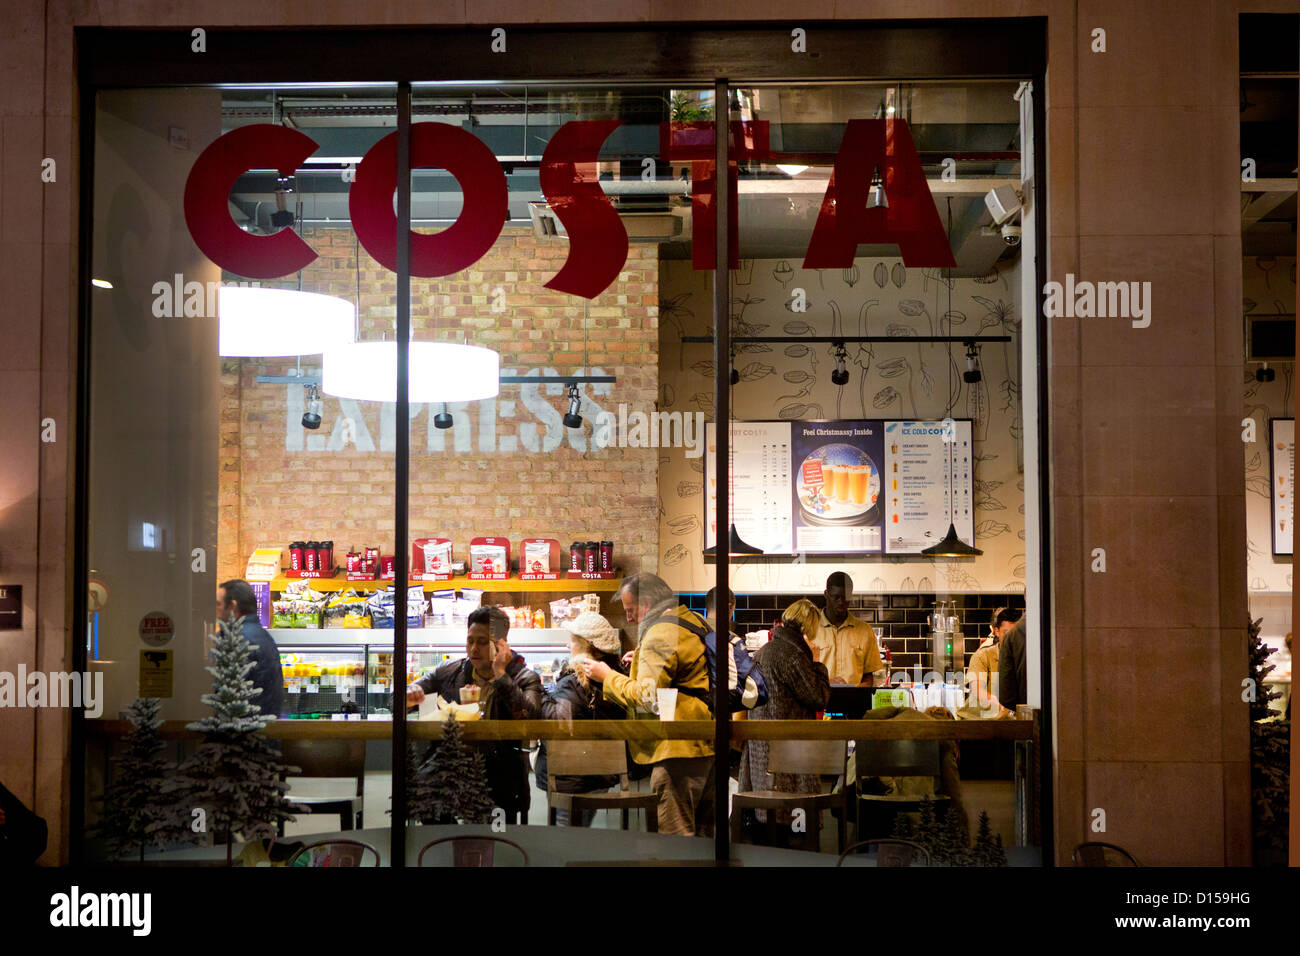 Una Costa Coffee shop a Londra. Immagini Stock